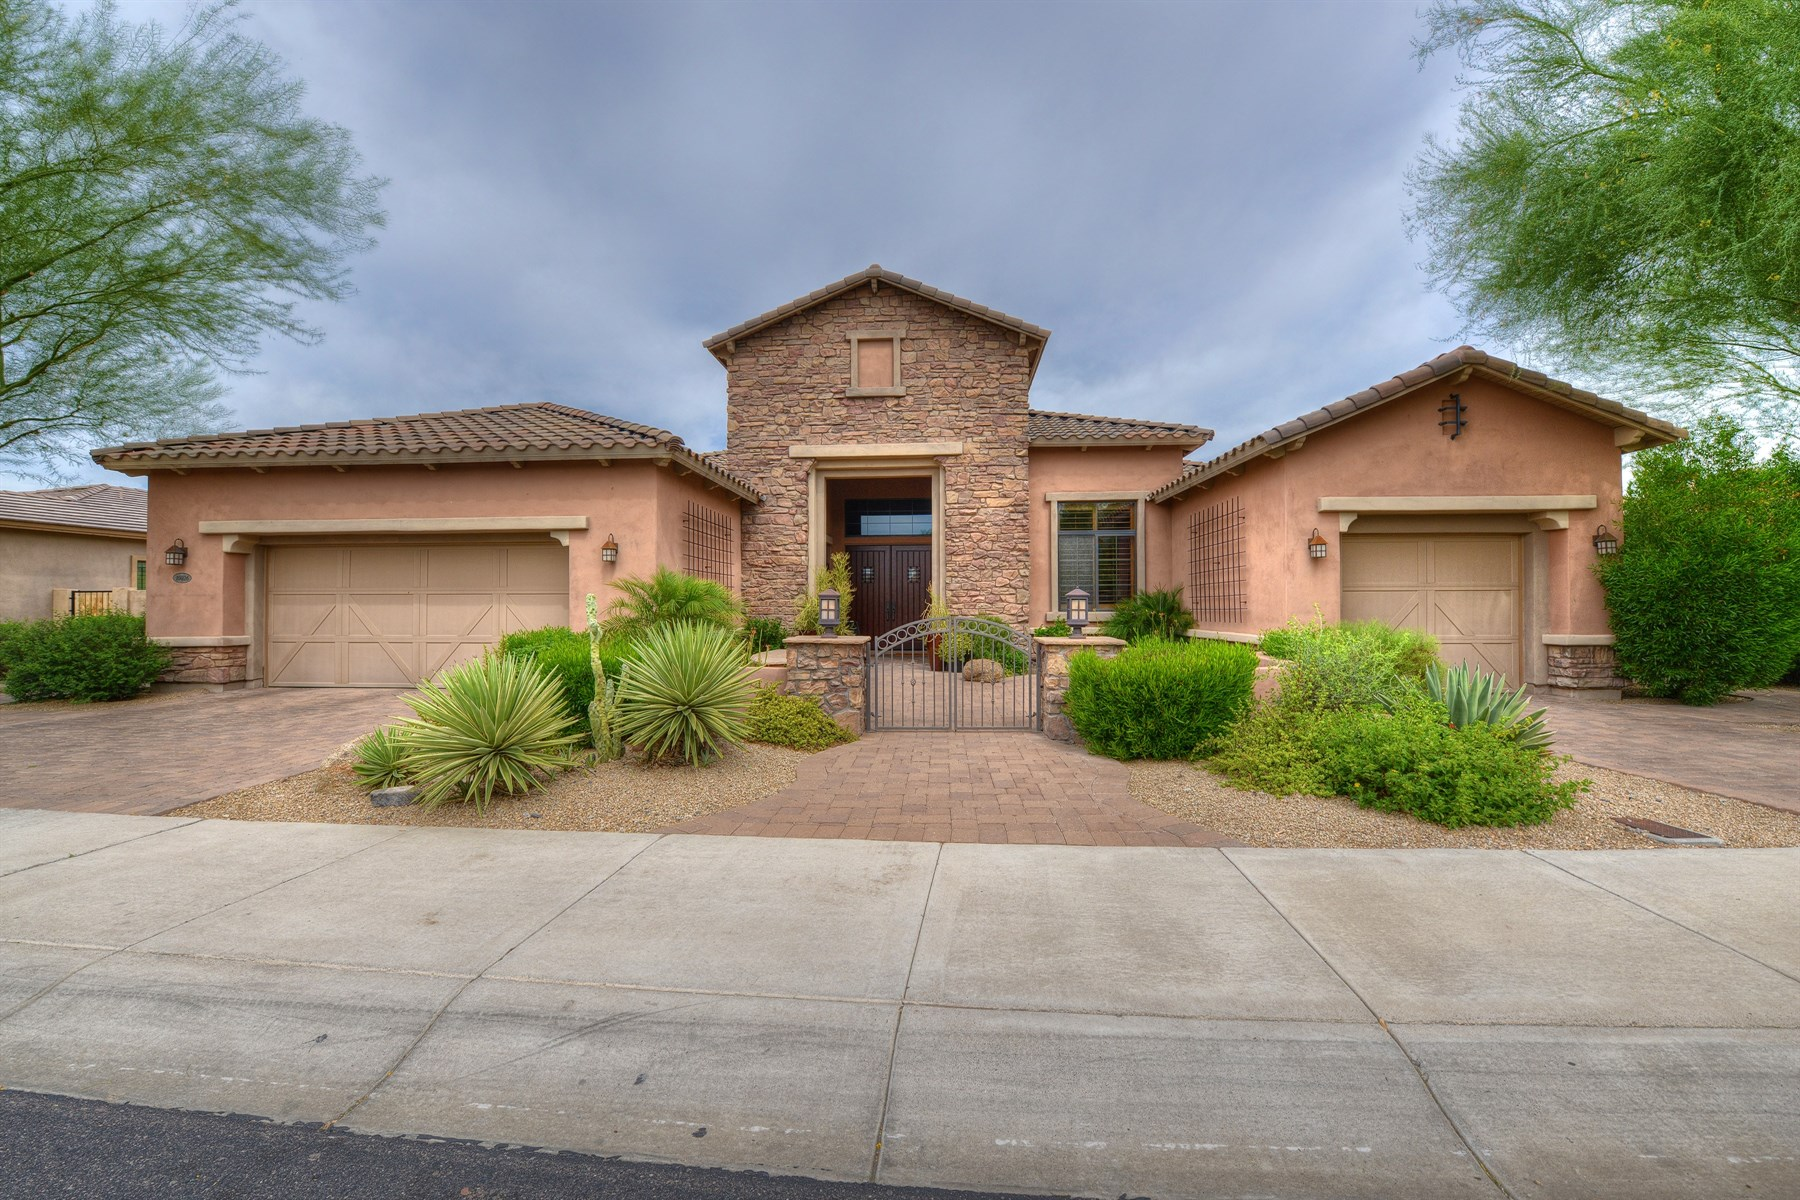 Single Family Home for Sale at Dramatic and highly upgraded single level home at Windgate Ranch 10026 E Ridgerunner Dr Scottsdale, Arizona 85255 United States